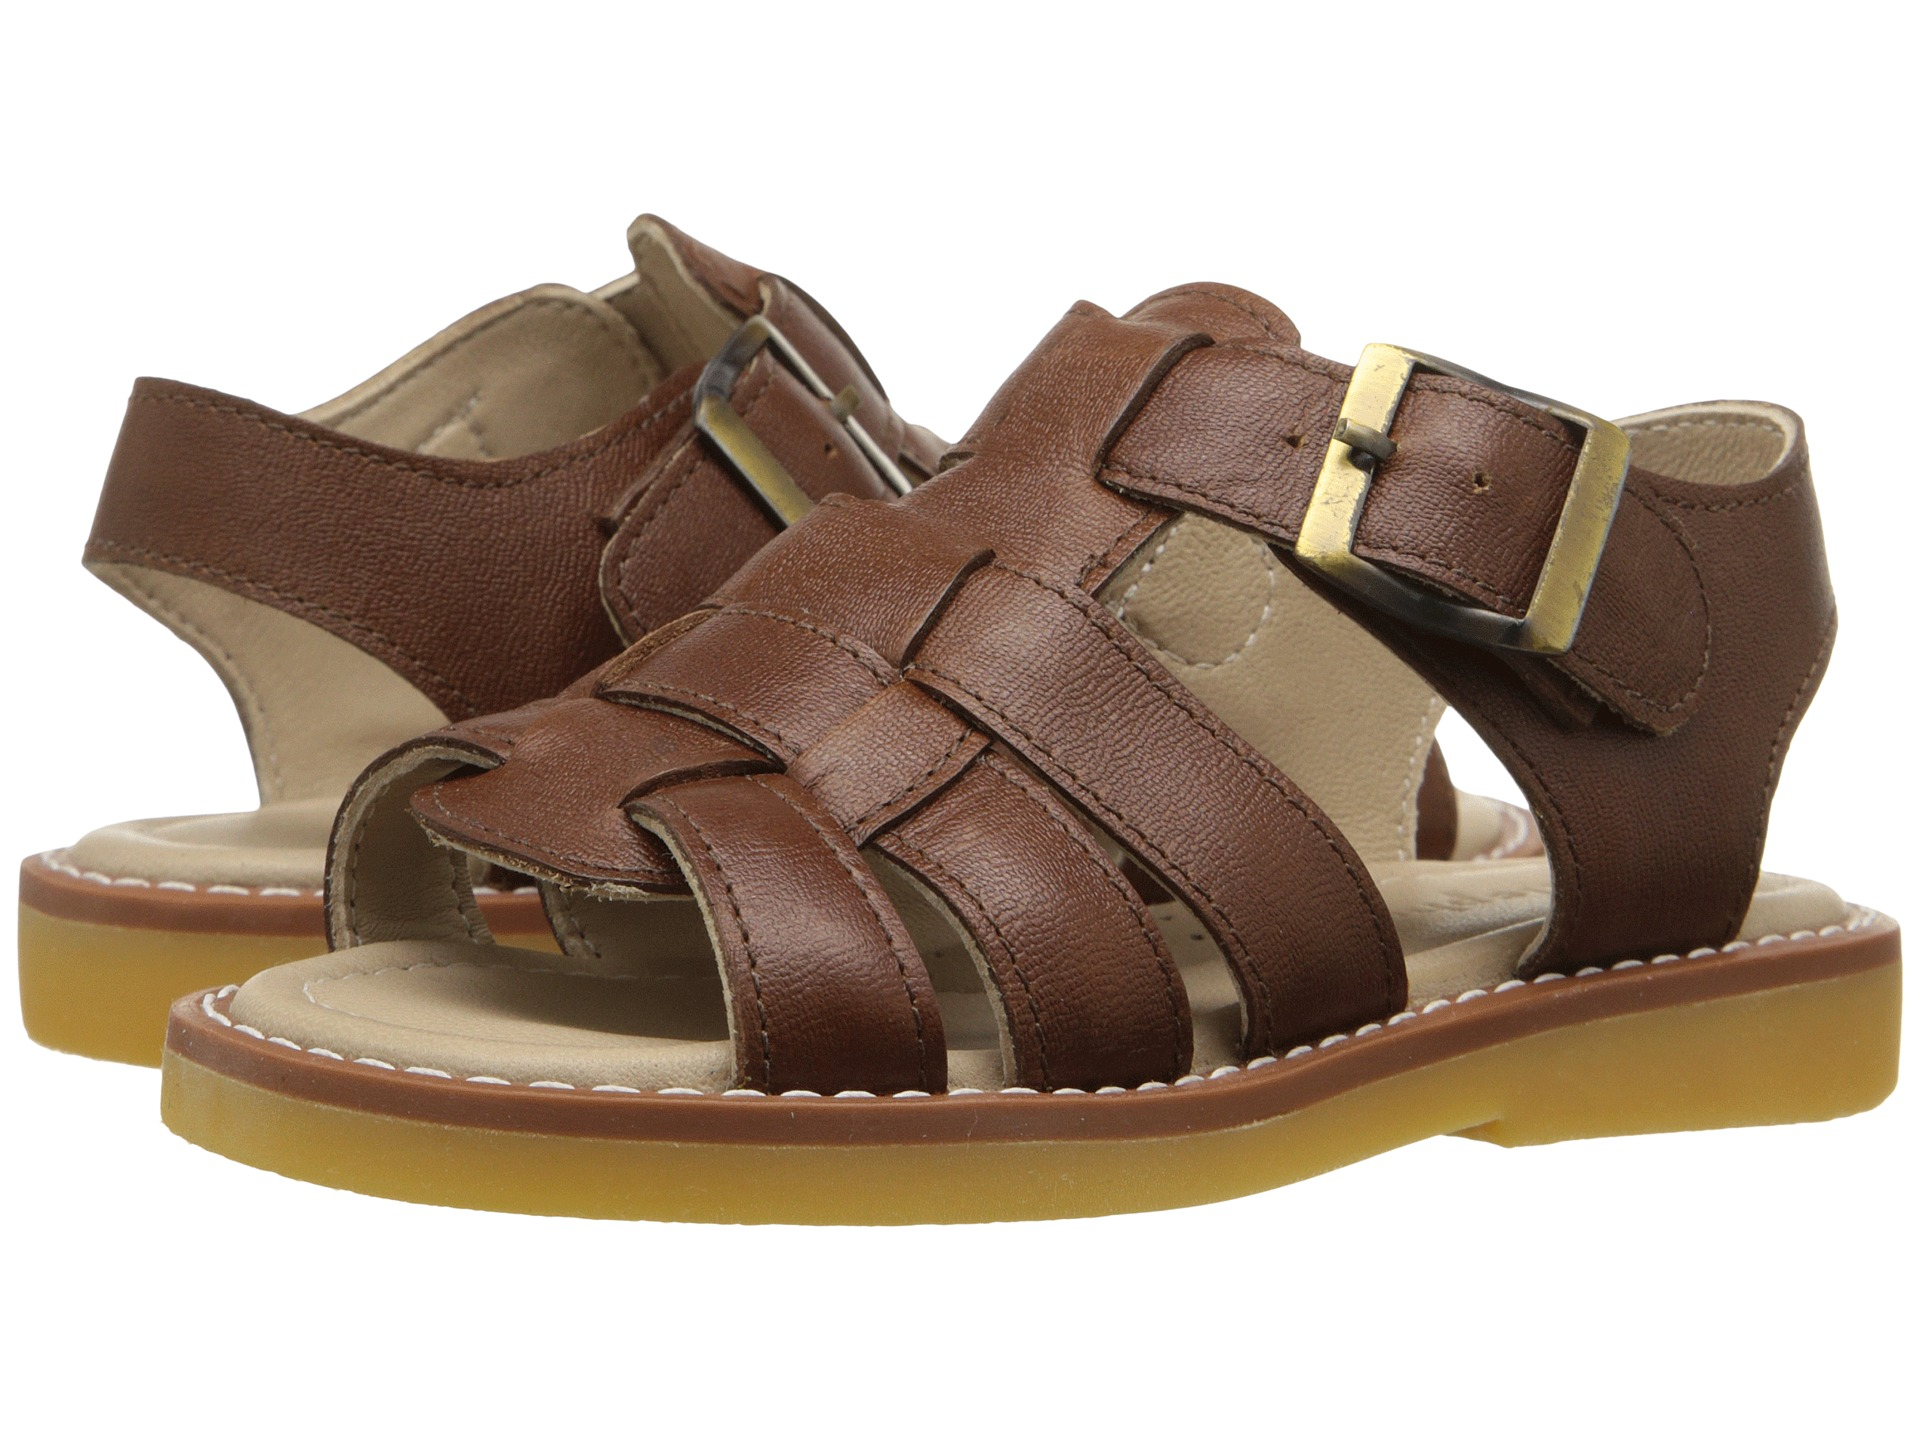 Find great deals on Boys Kids Sandals at Kohl's today! Sponsored Links Outside companies pay to advertise via these links when specific phrases and words are searched.